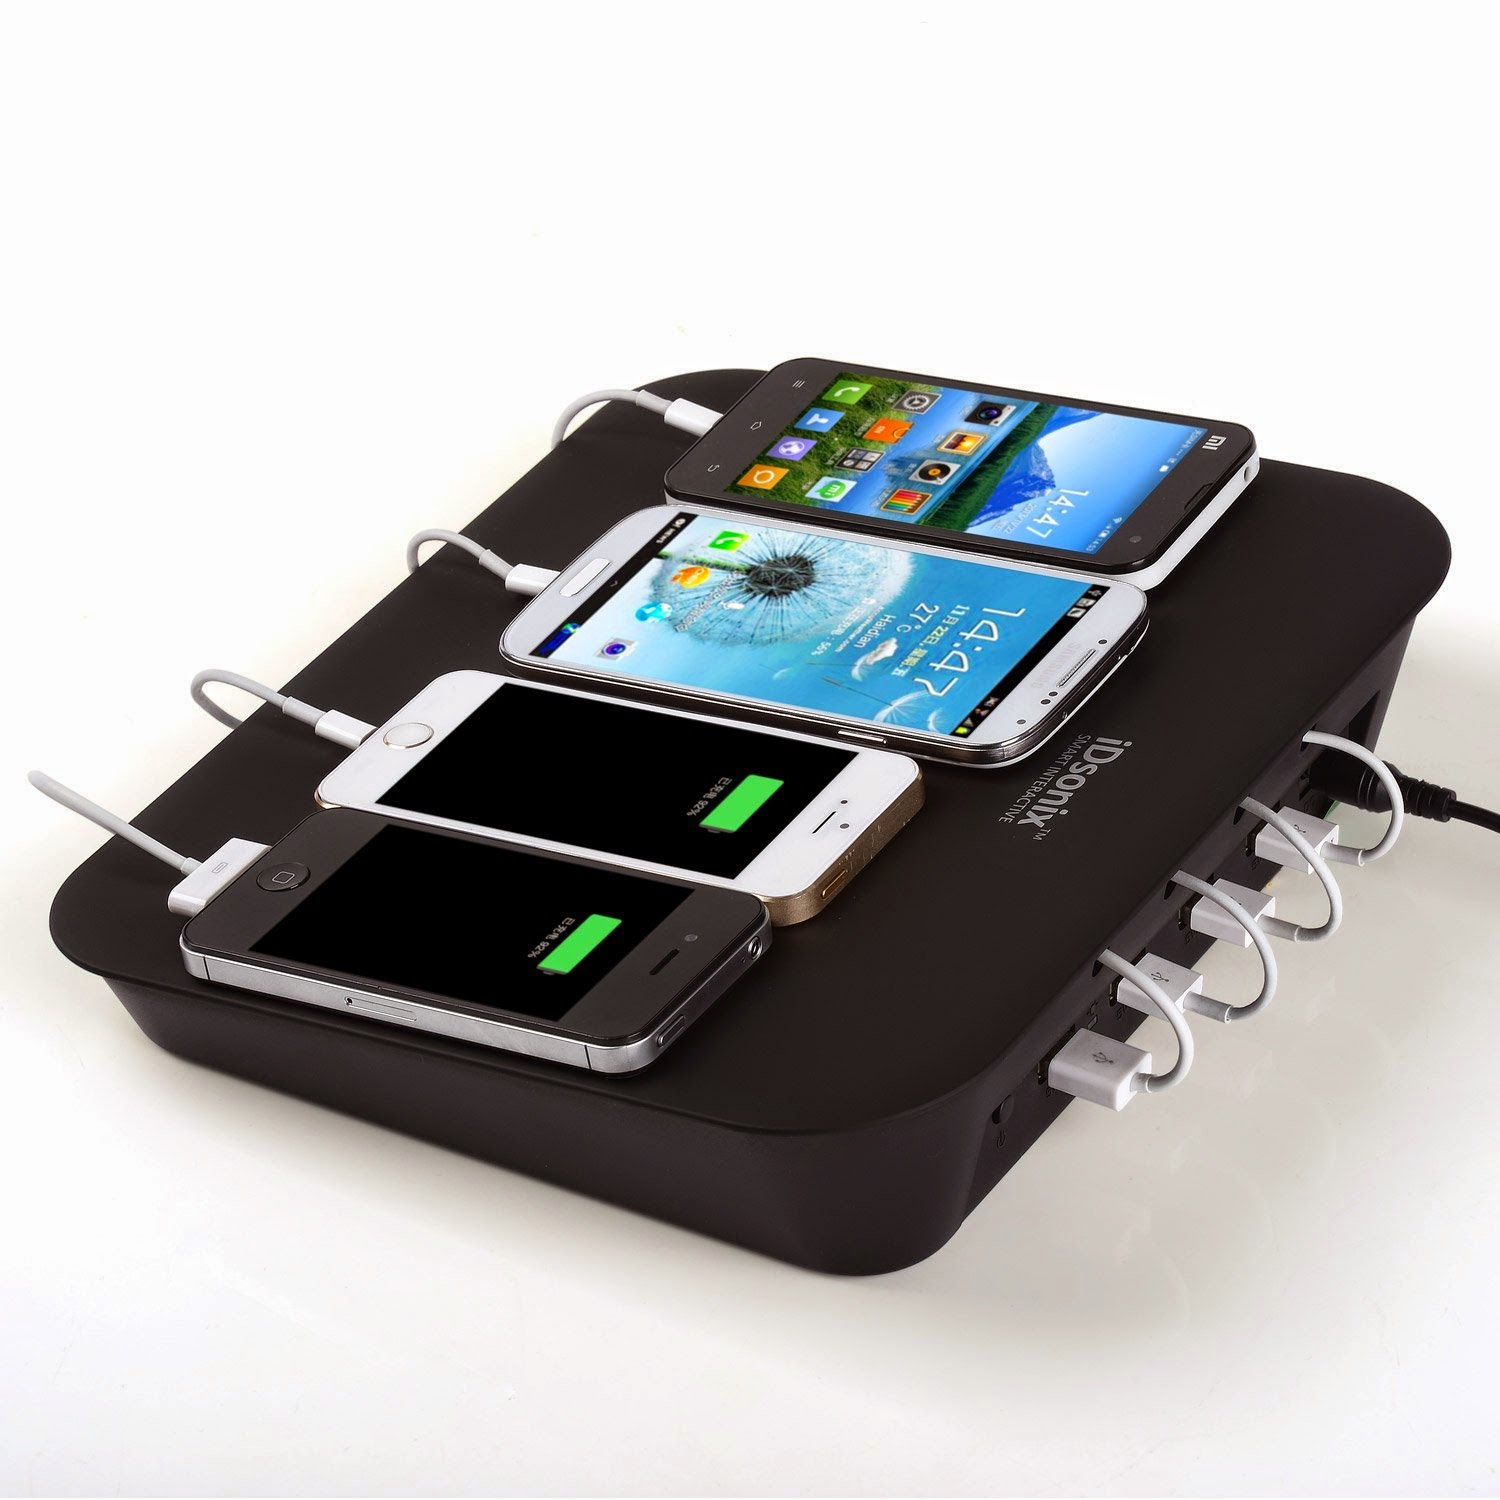 Idsonix Multiple Devices Organizer Best Affordable Charging Station